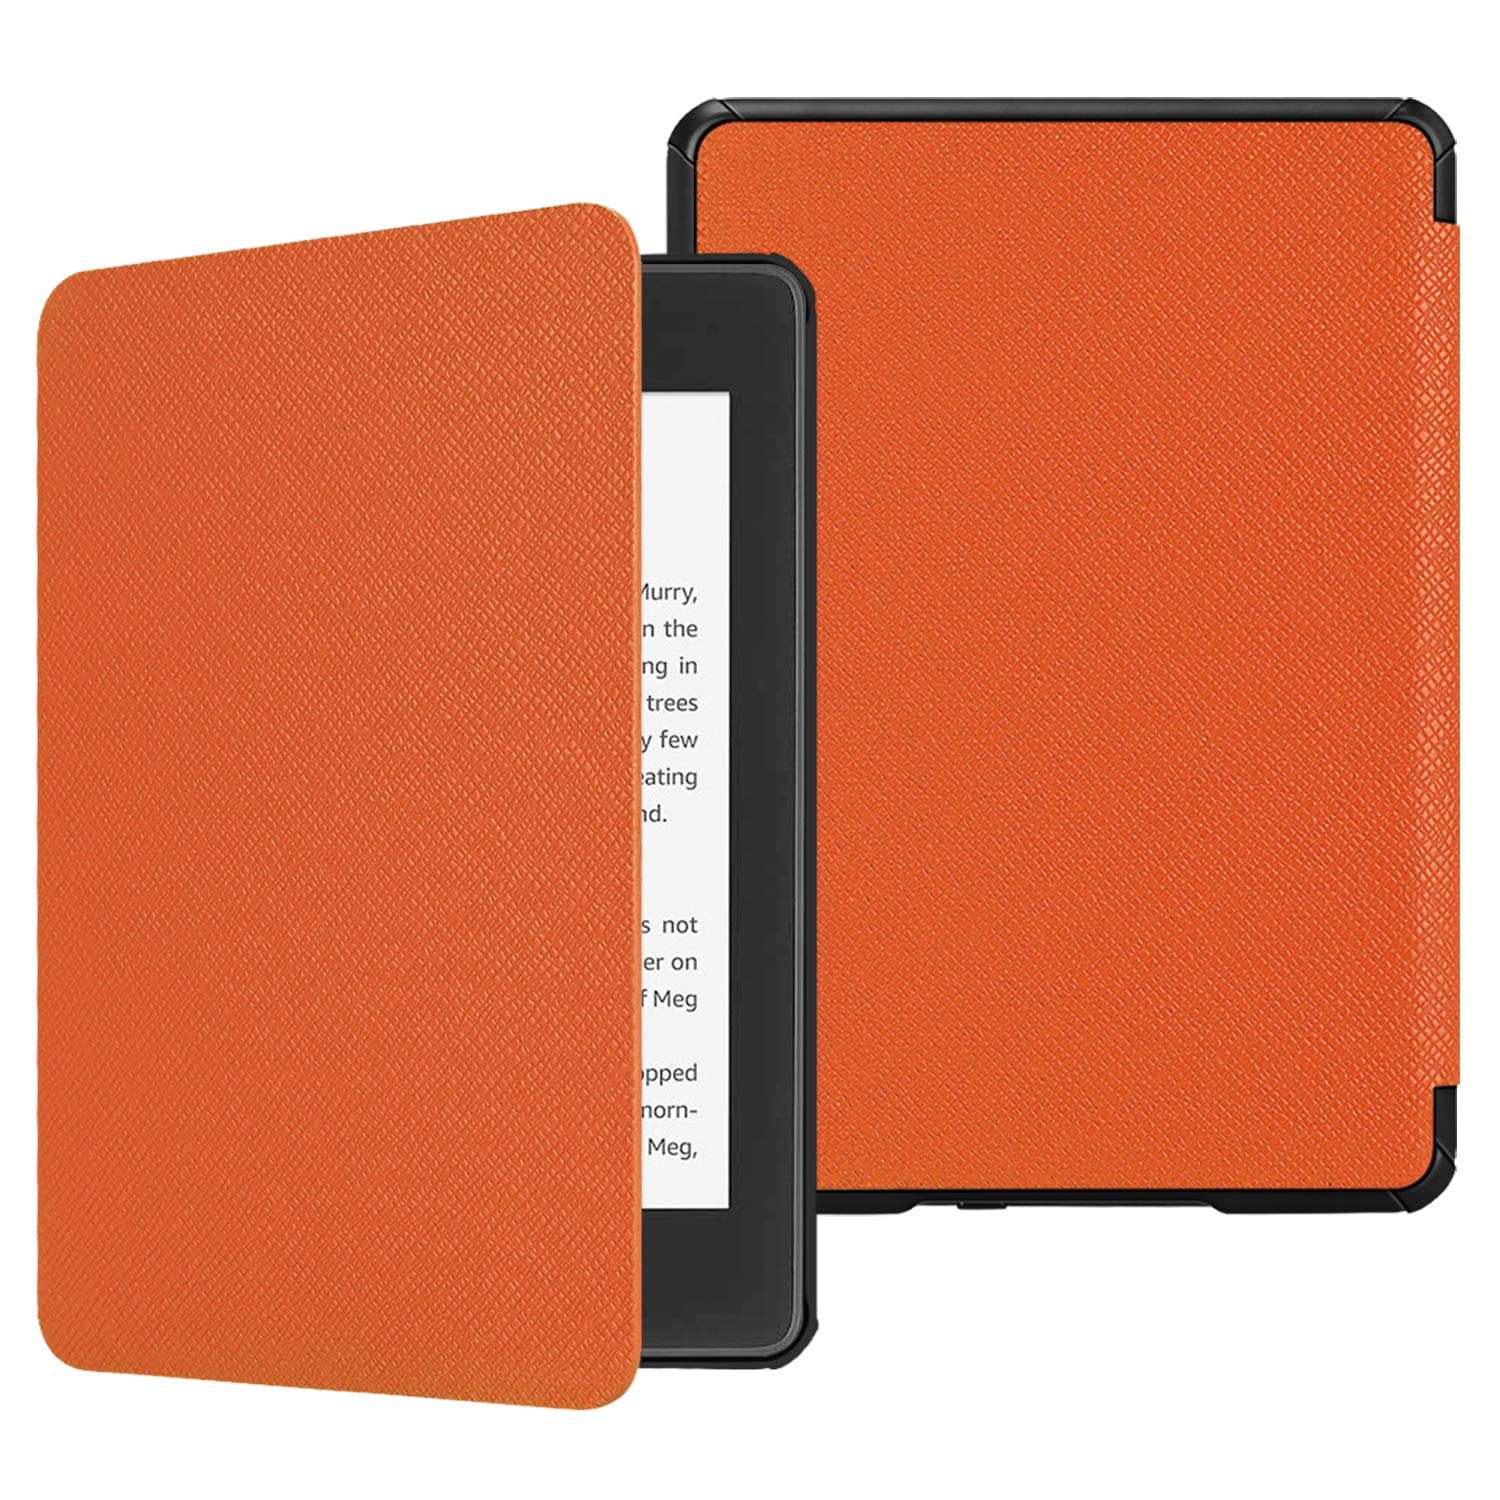 Fintie Slimshell Case for All-New Kindle Paperwhite (10th Generation, 2018 Release) - Premium Lightweight PU Leather Cover with Auto Sleep/Wake for Amazon Kindle Paperwhite E-Reader, Orange